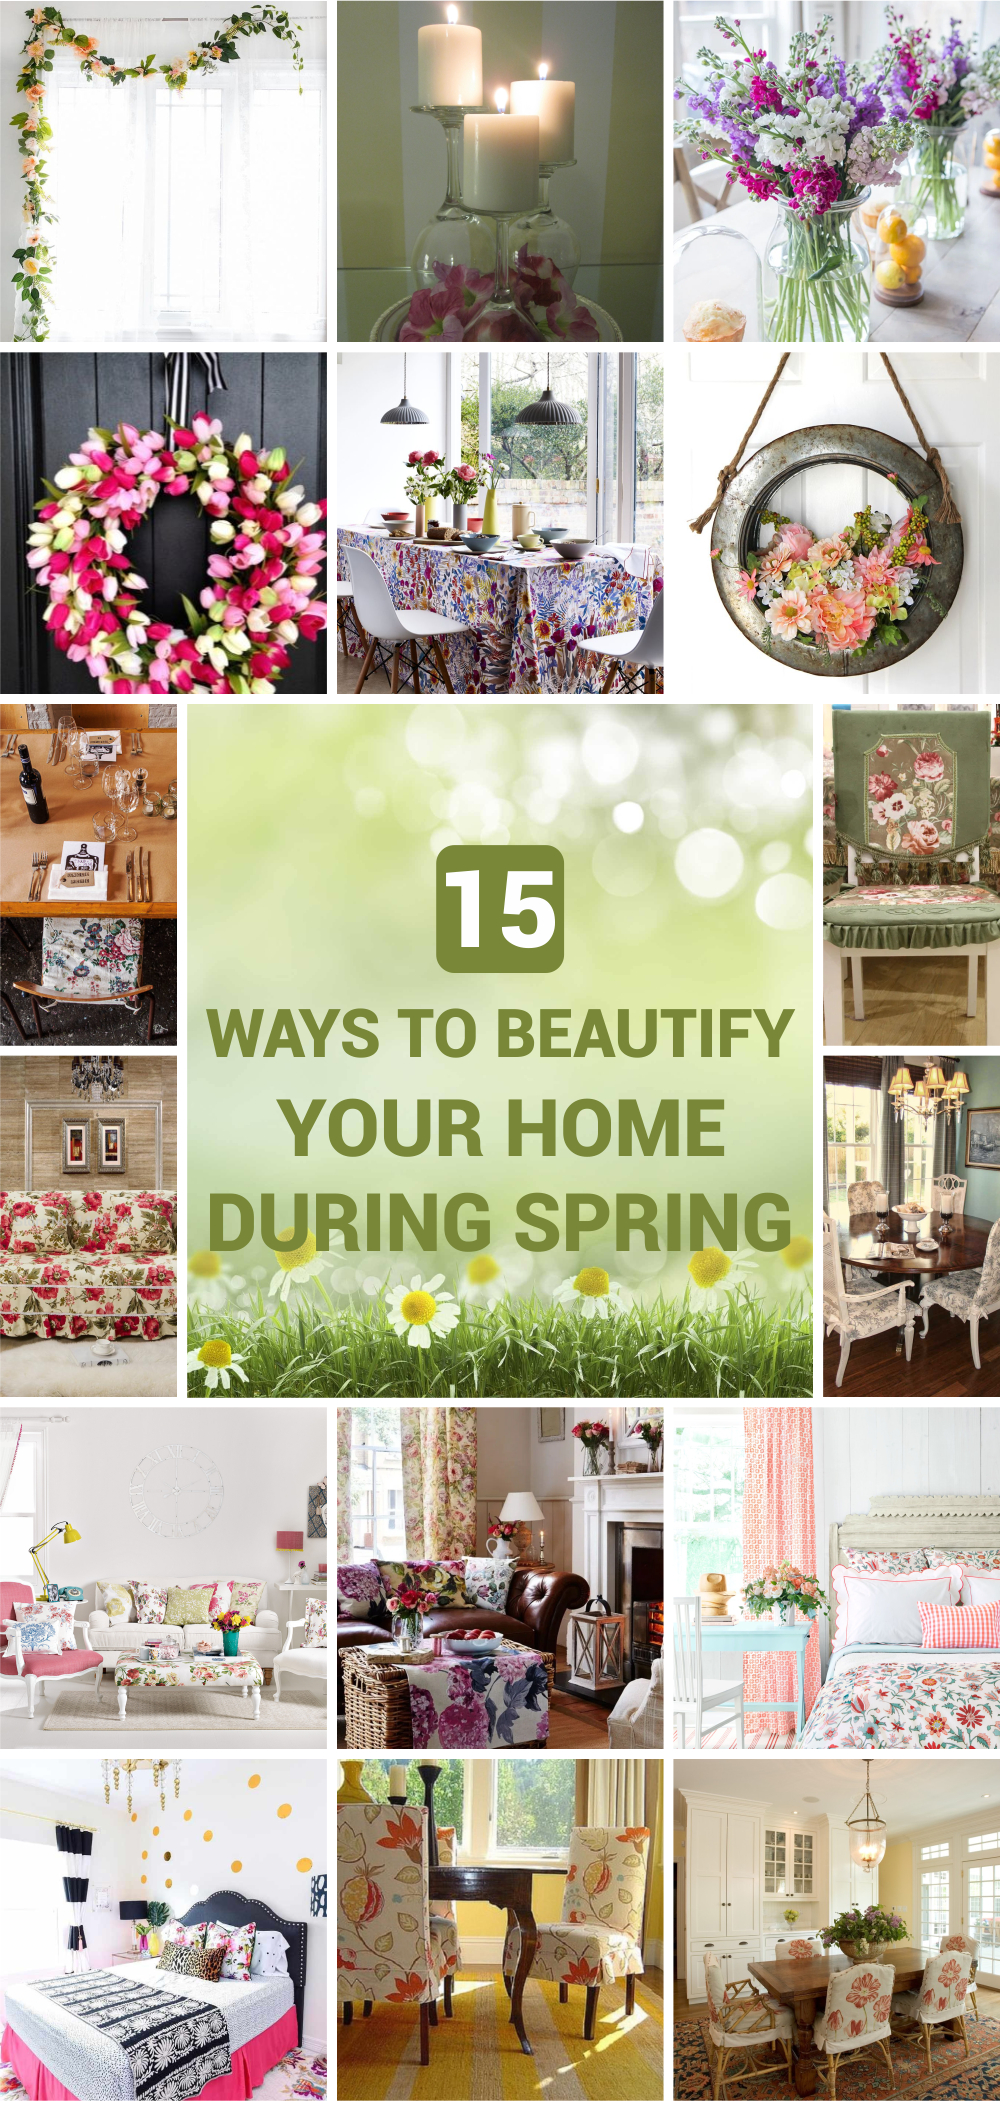 15 ways to beautify your home during spring 1